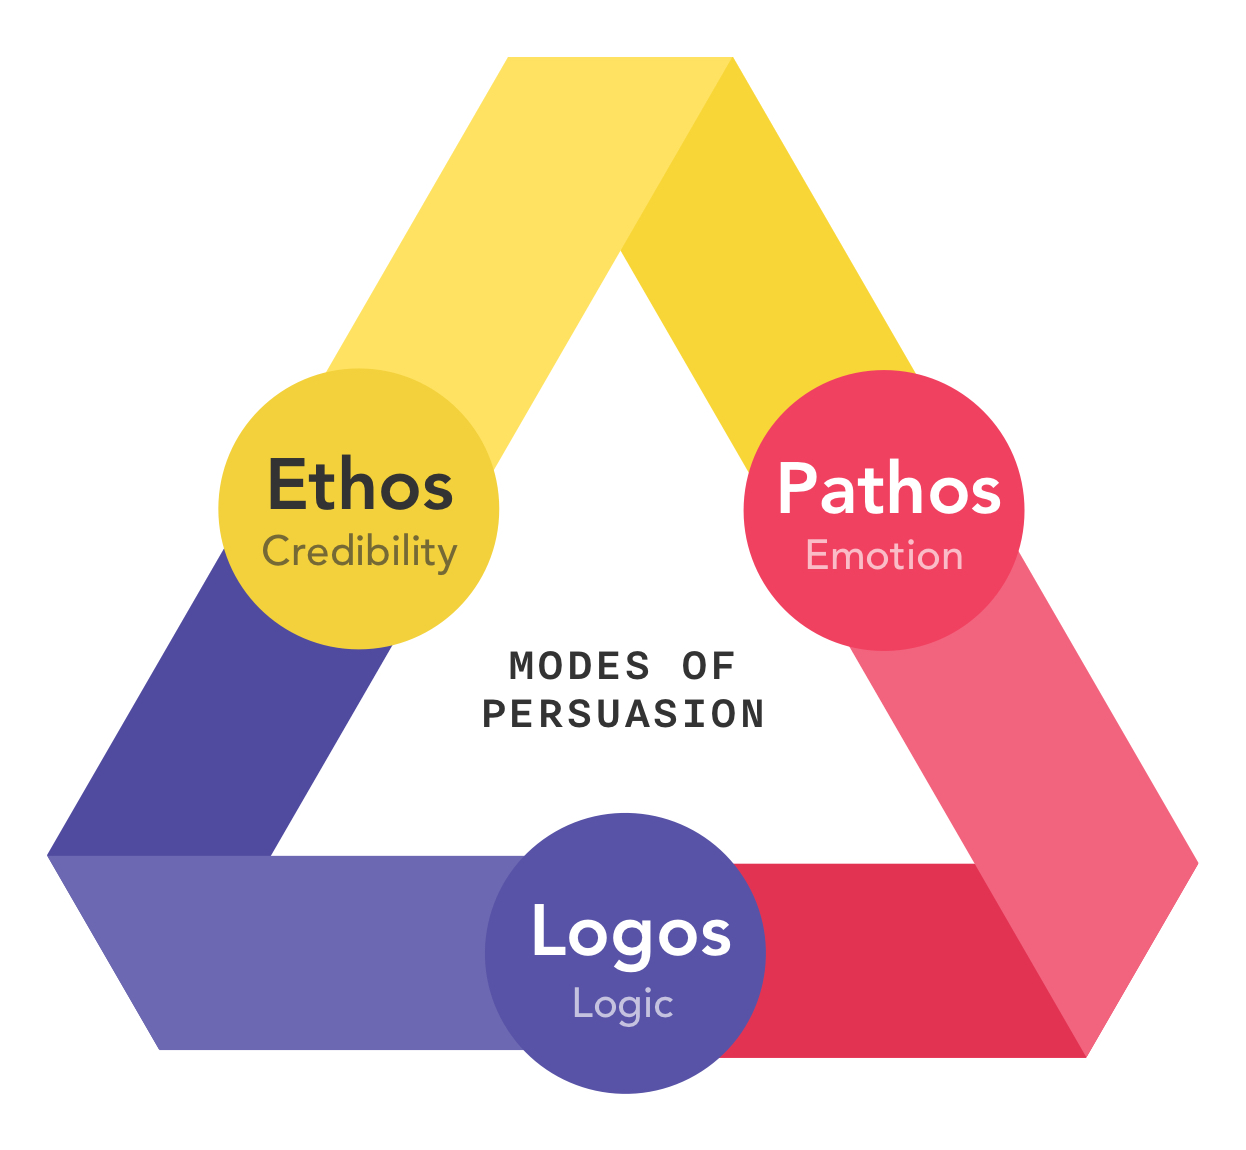 """triangle showing ethos (credibility), pathos (emotion), and logos (logic) with the title """"modes of persuasion"""" in the center"""